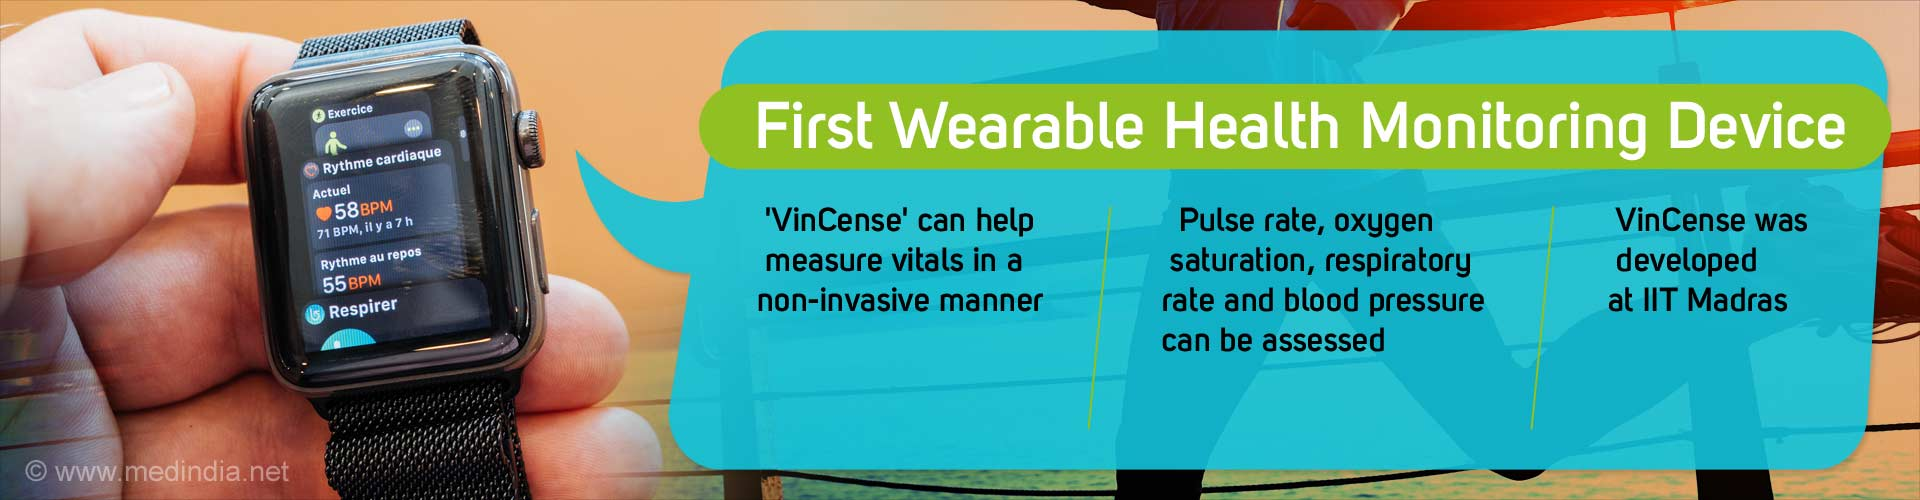 IIT Madras Develops First Wearable Device To Monitor Health